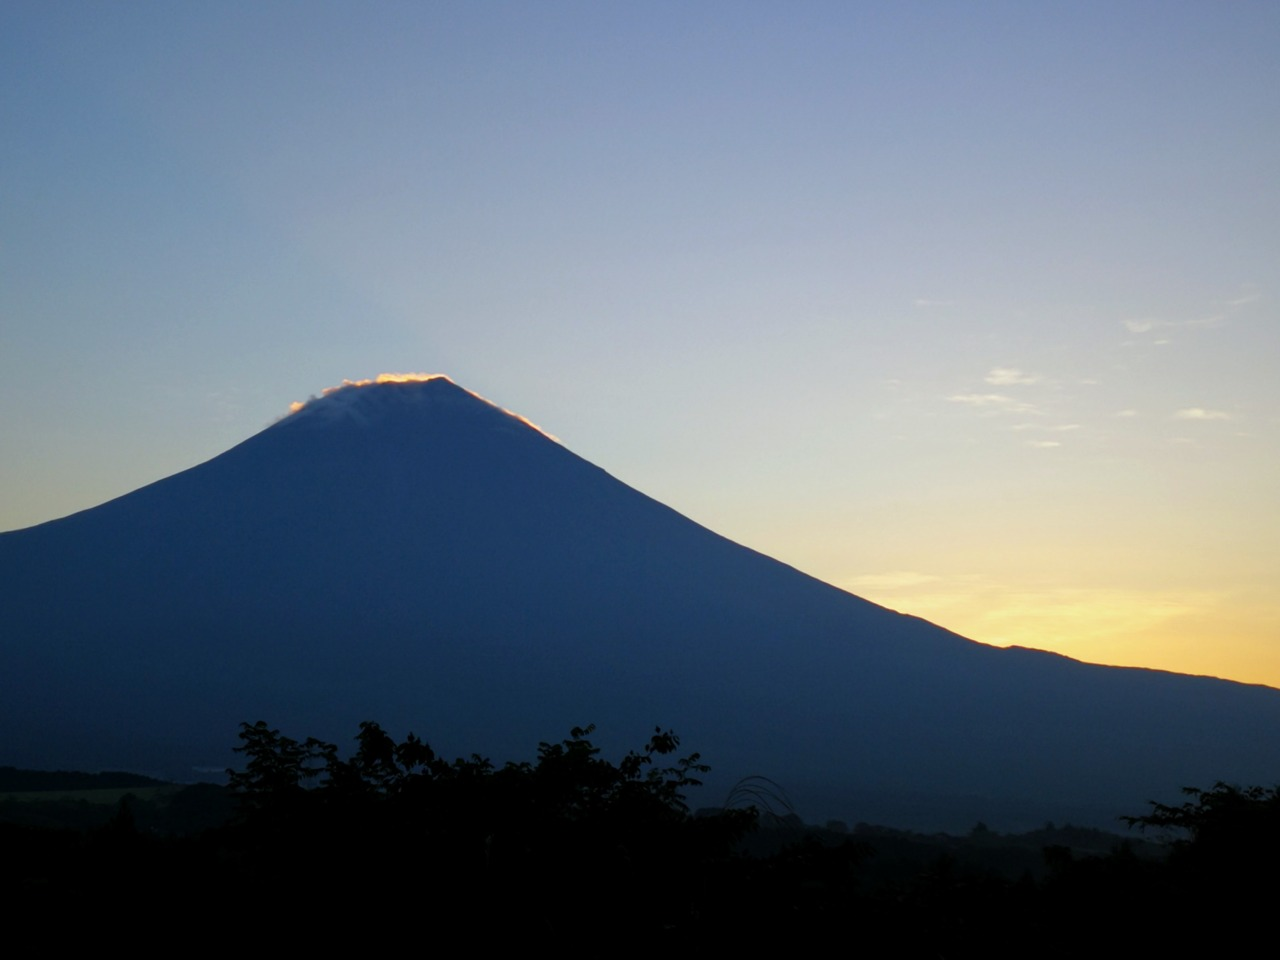 sunrise over mount fuji by kellie anderson